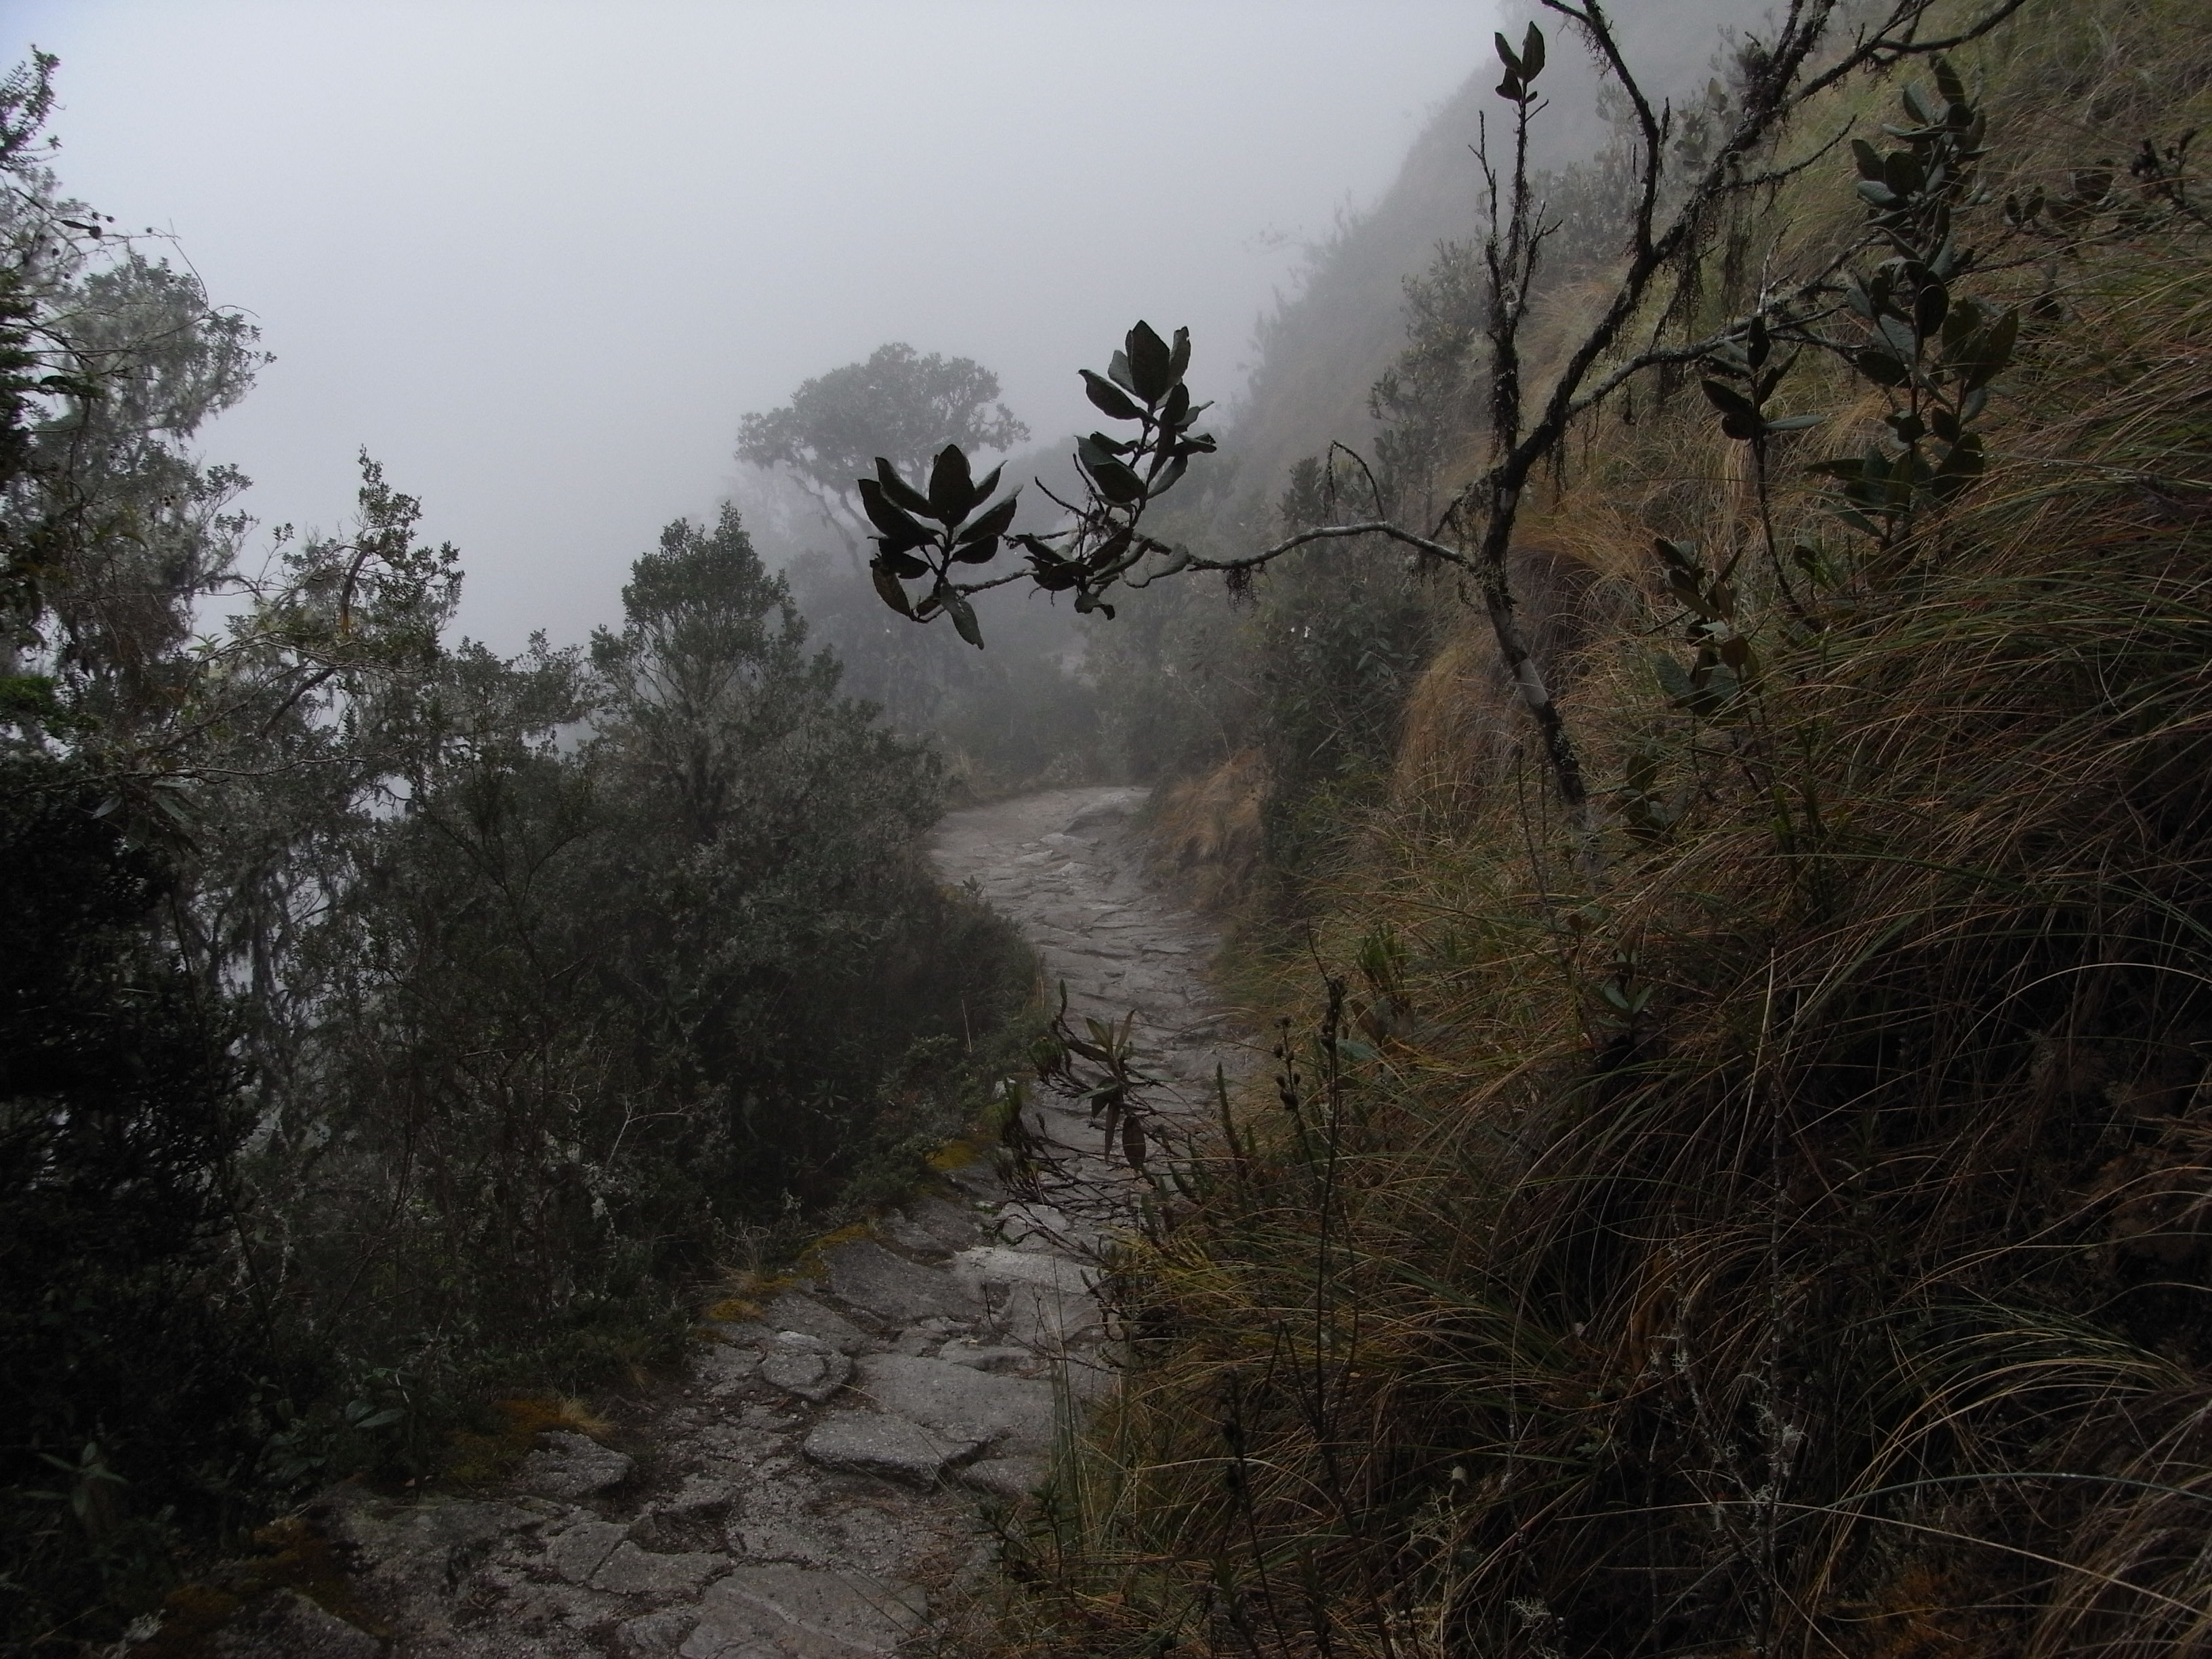 the Inka trail in the rain can be atmospheric!